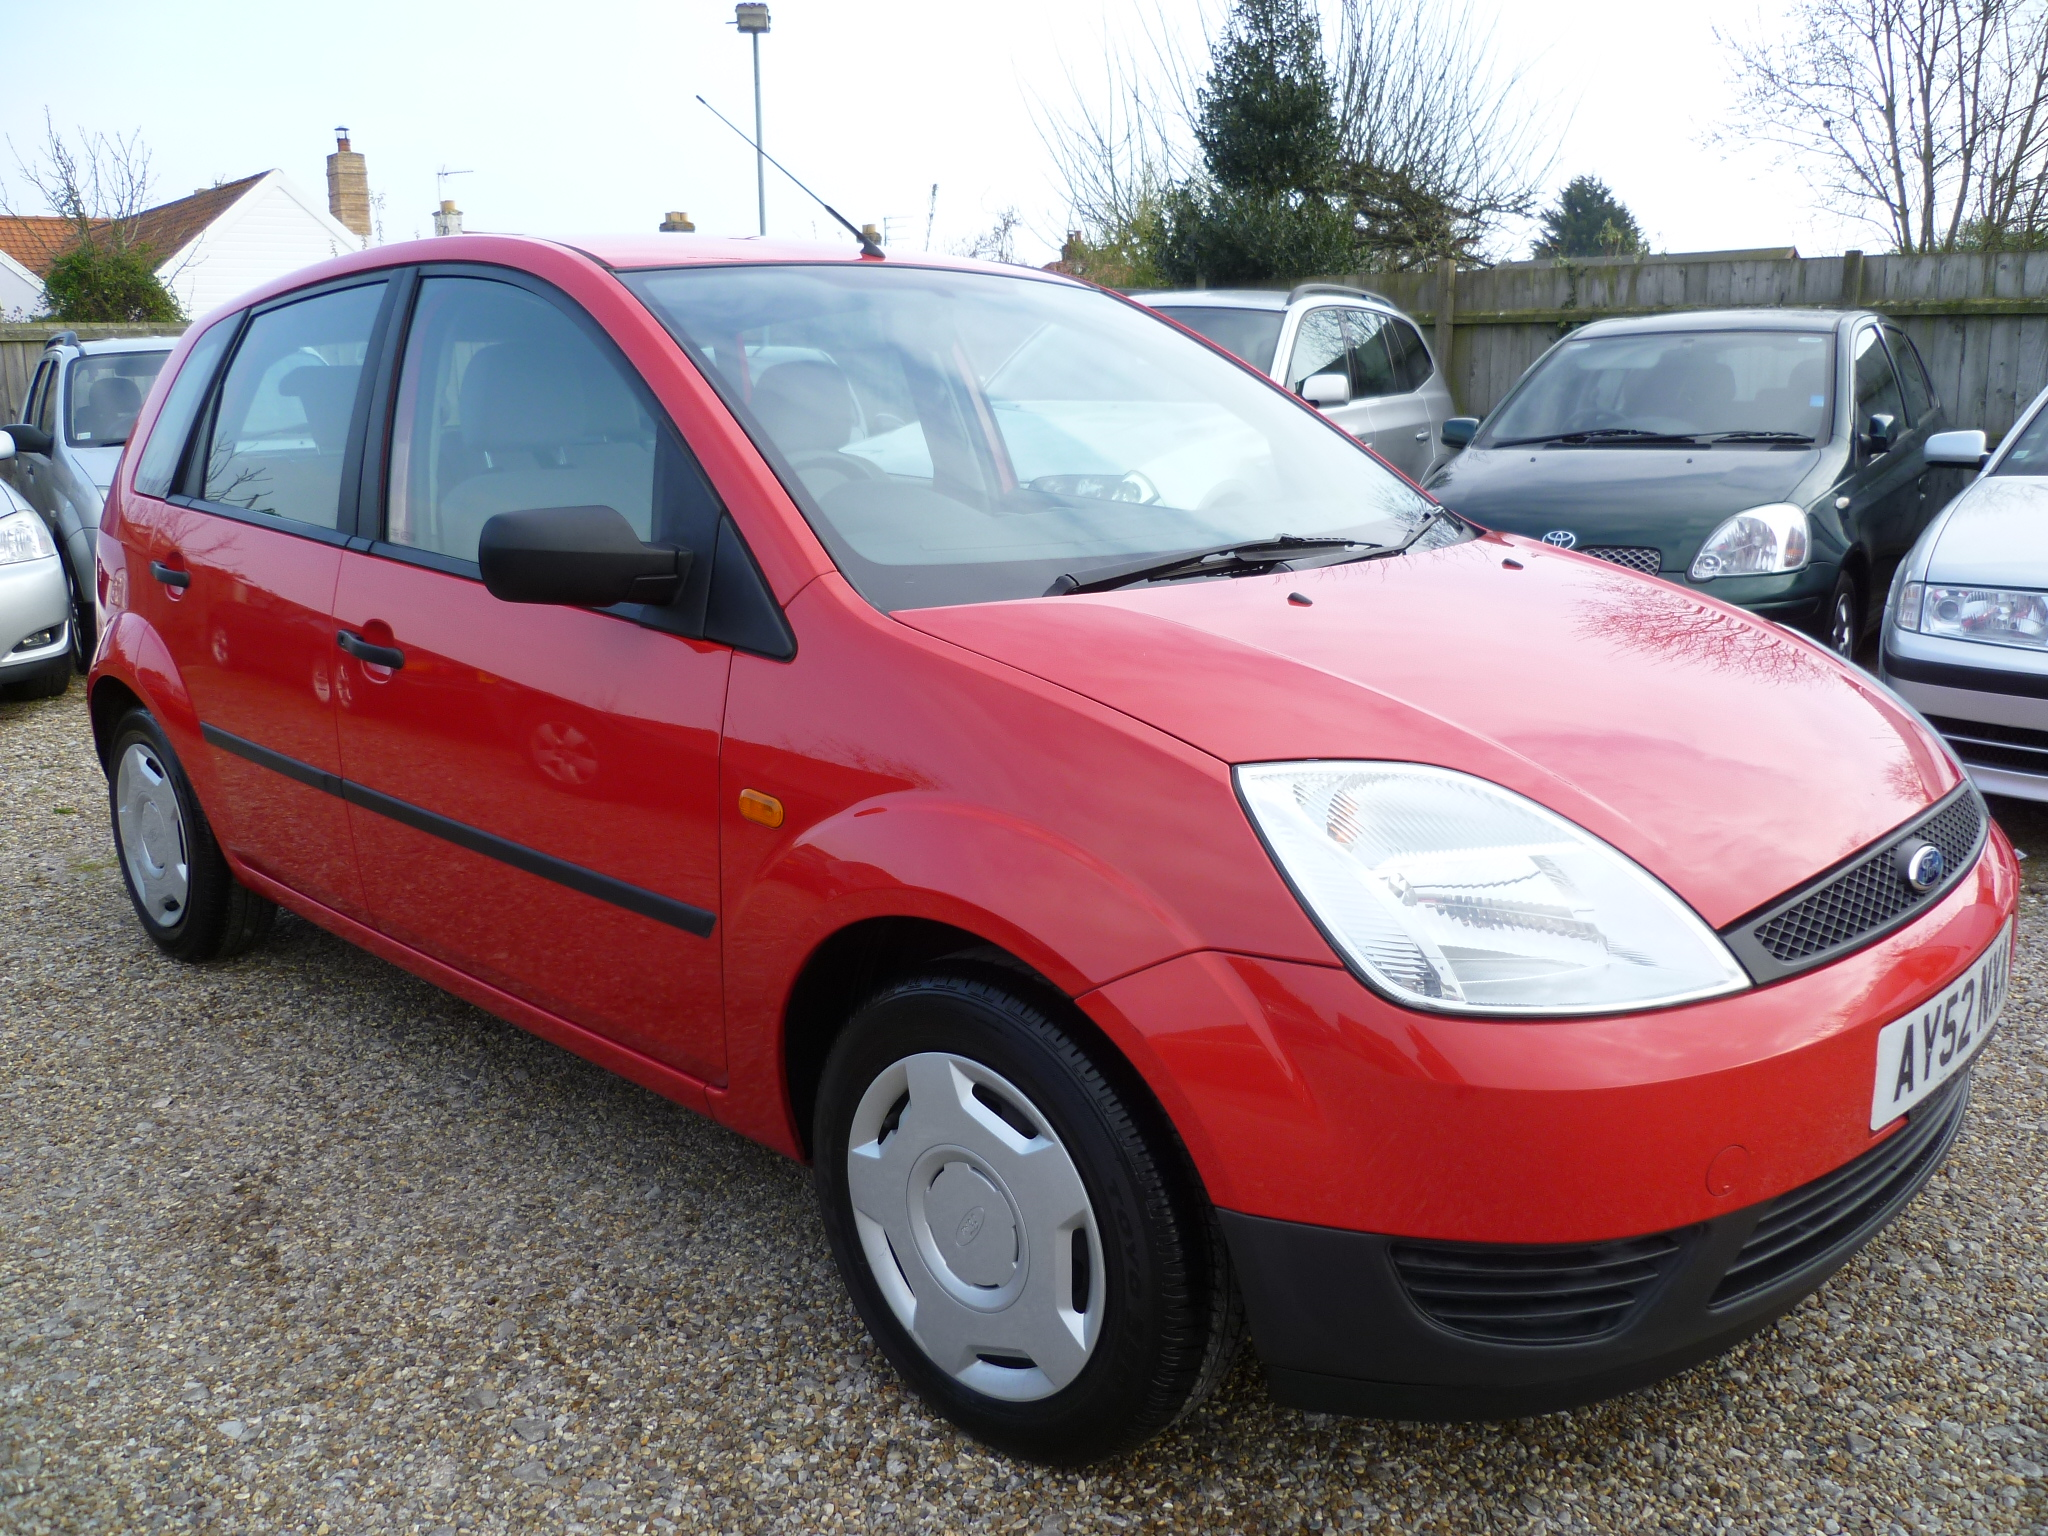 FORD FIESTA 1.3 FINESSE 5DR 002